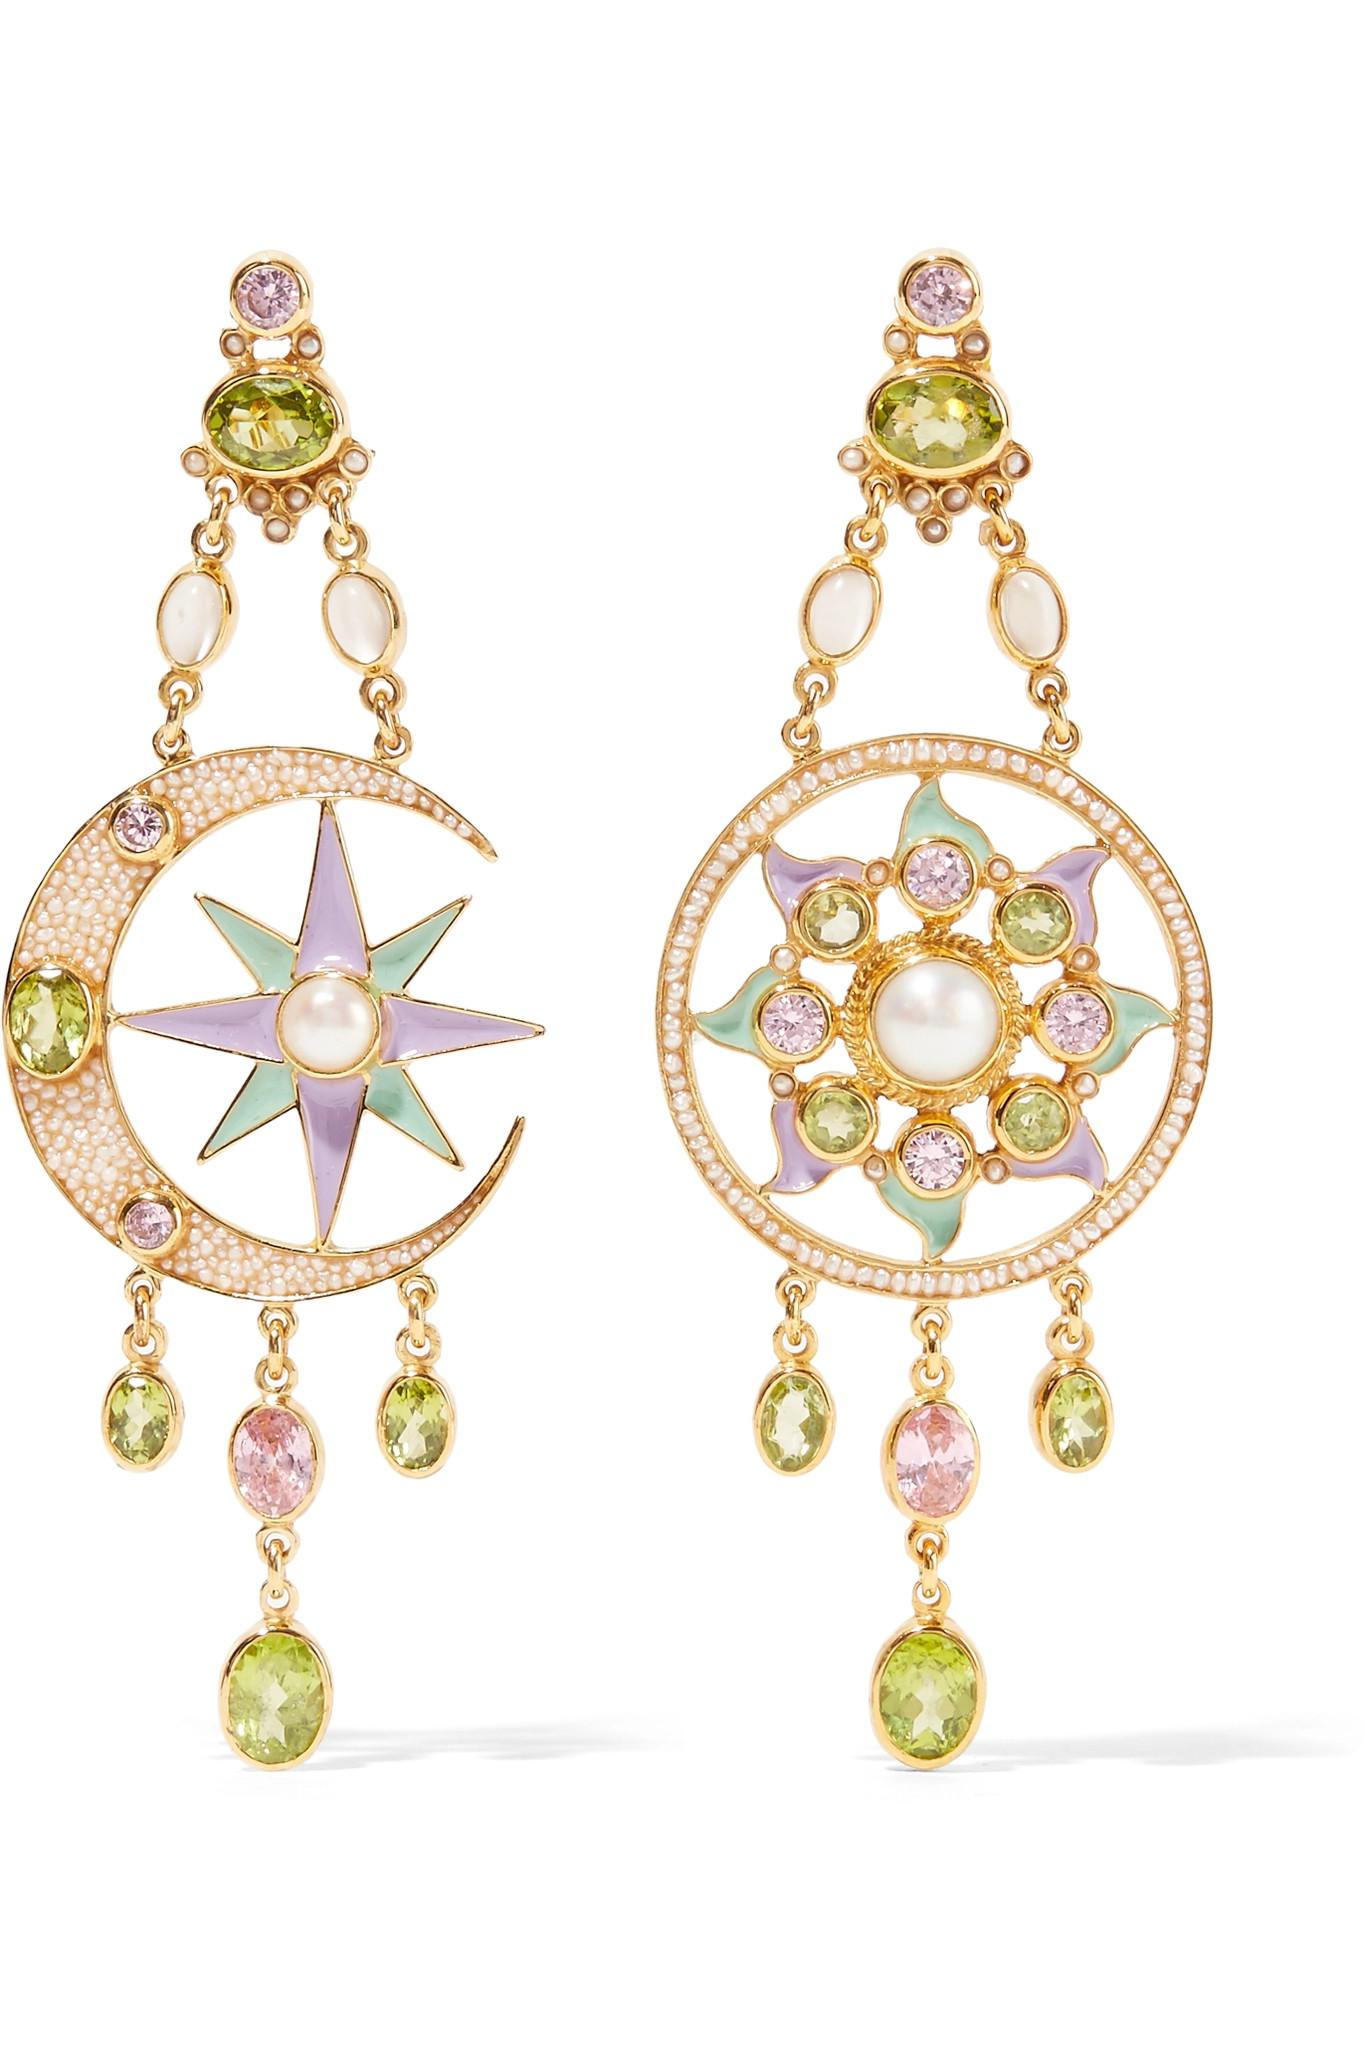 Percossi Papi Gold-plated And Enamel Multi-stone Earrings - Green Z8rYSiqPvO